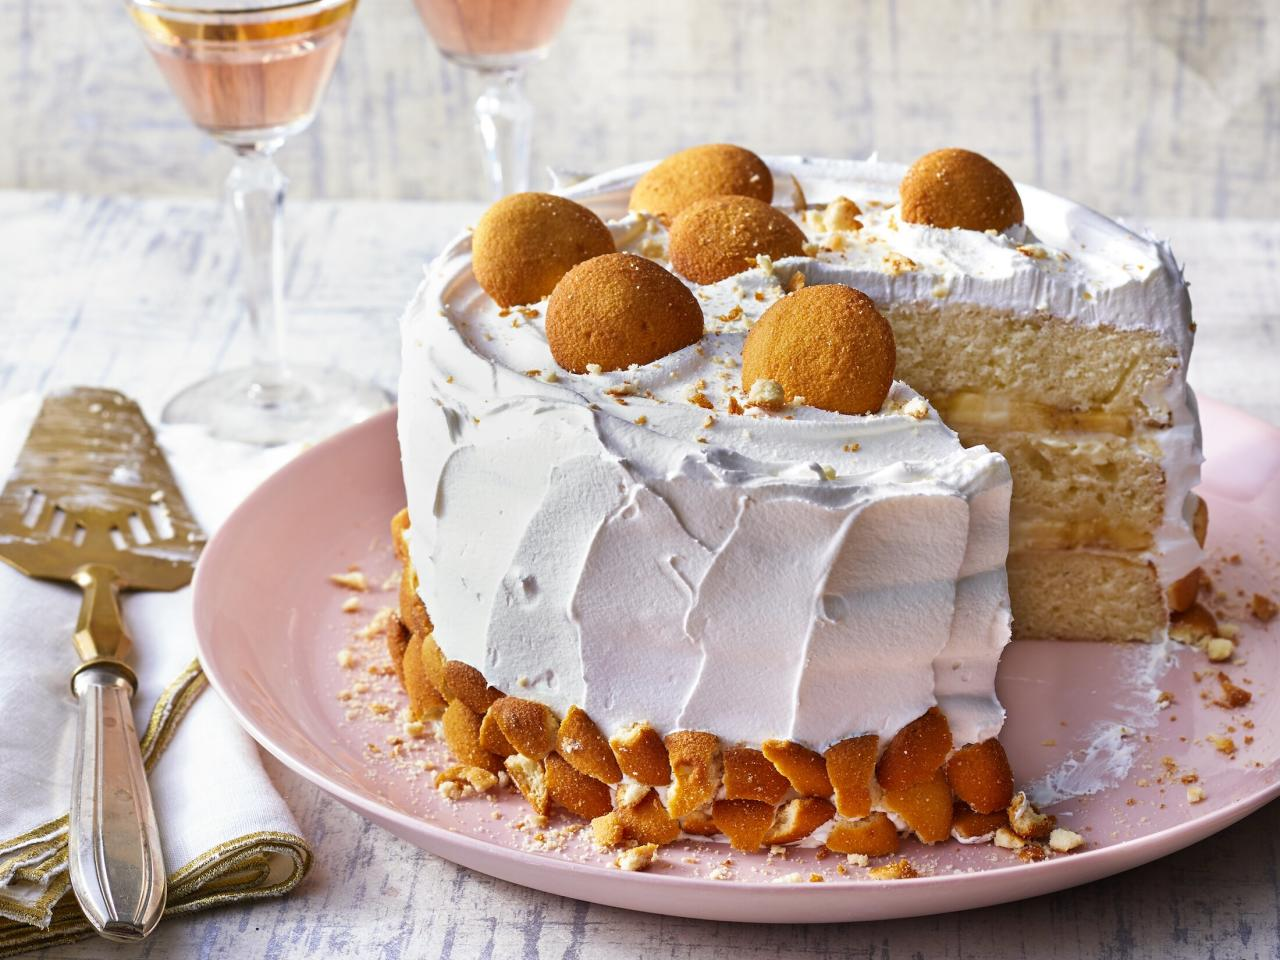 """<p><em>One of our testers called this """"the ultimate banana pudding in cake form."""" Tender laters of cake, creamy vanilla custard, and bananas come together to create a mouthwatering dessert. Warning: There won't be leftovers. </em></p> <p><a href=""""https://www.myrecipes.com/recipe/banana-pudding-cake"""">Banana Pudding Cake Recipe</a></p>"""